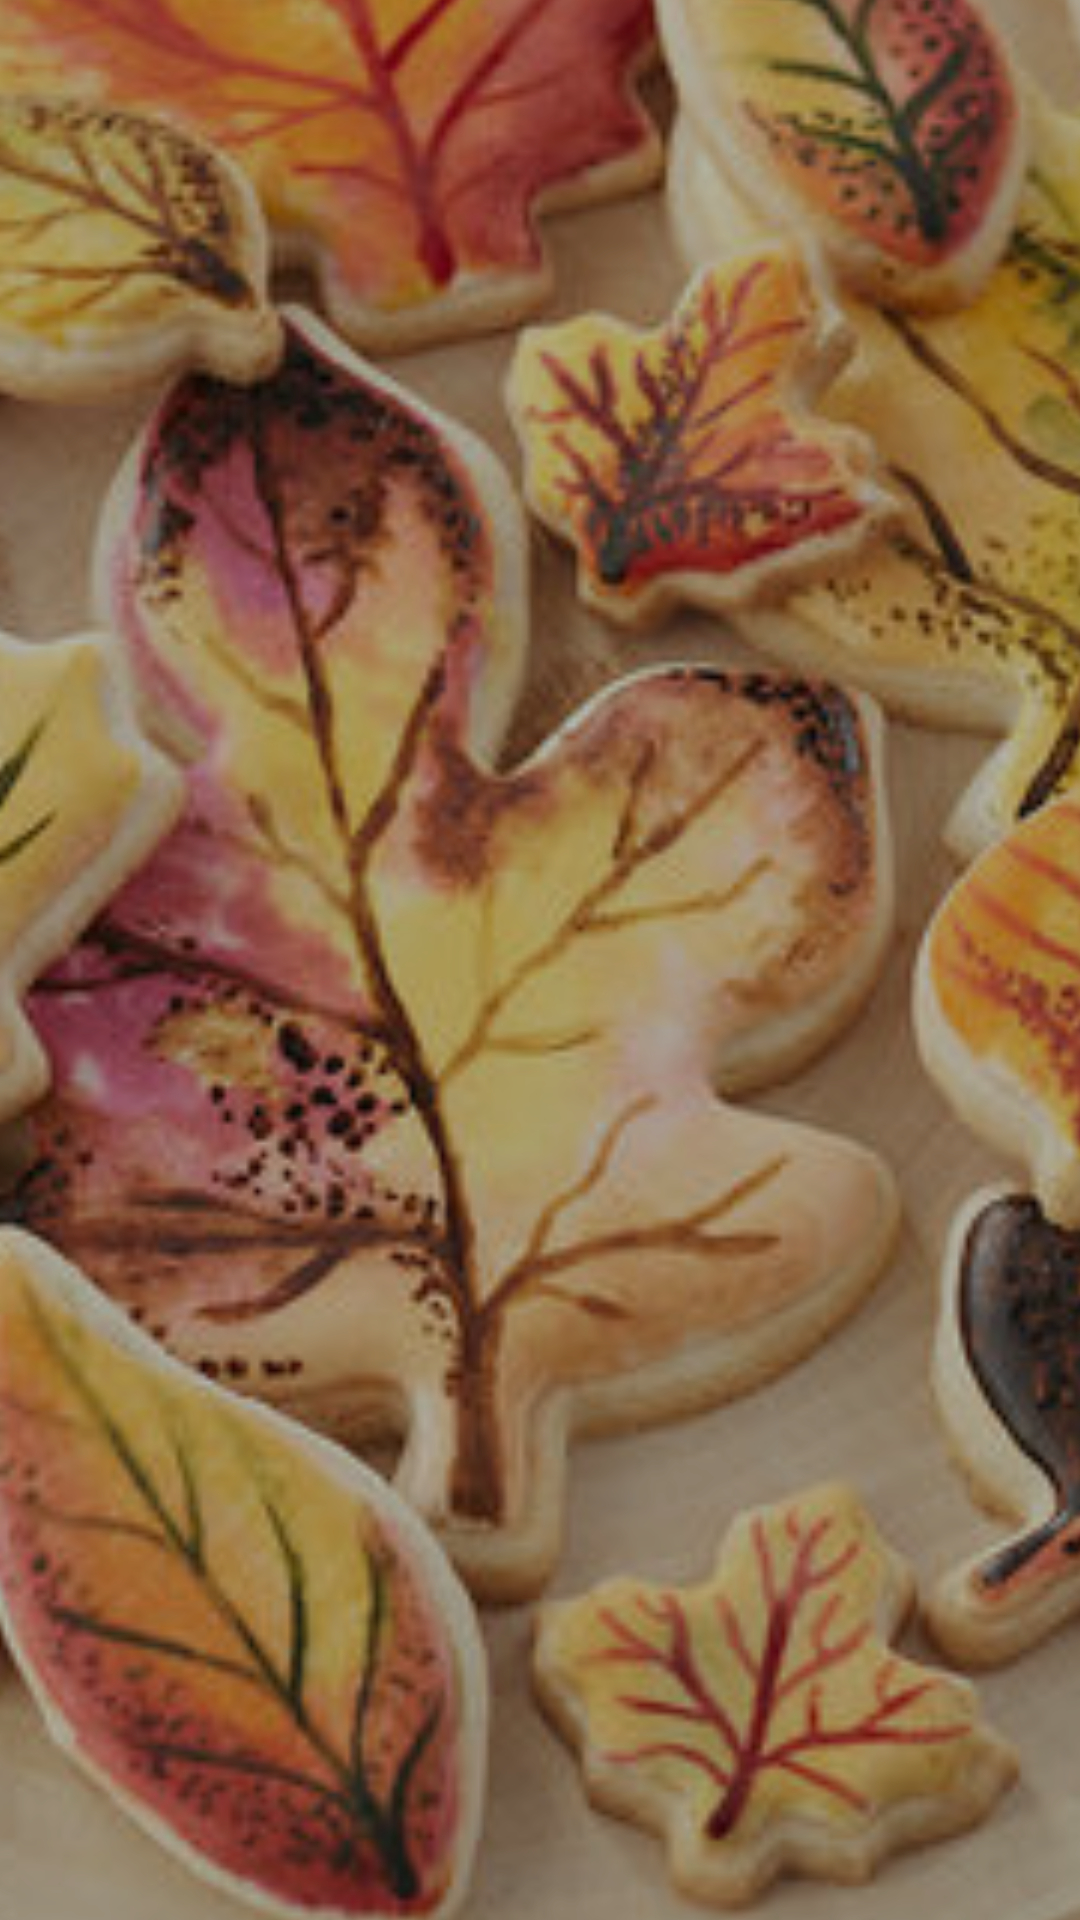 You will learn to decorate cookies using sponges, brushes and edible paint.